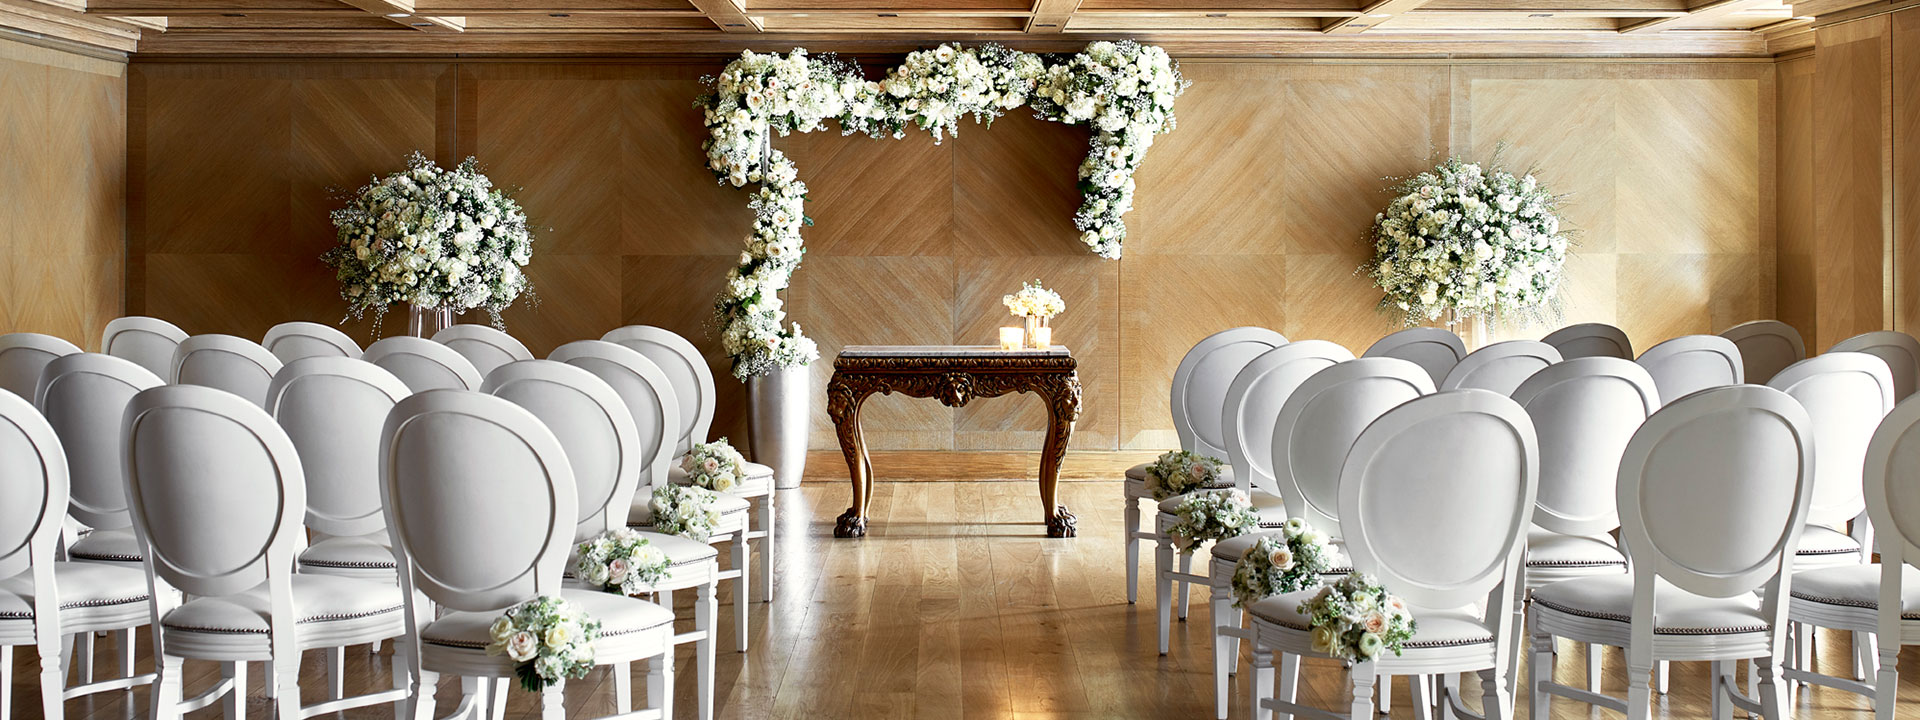 Maple room wedding ceremony set up